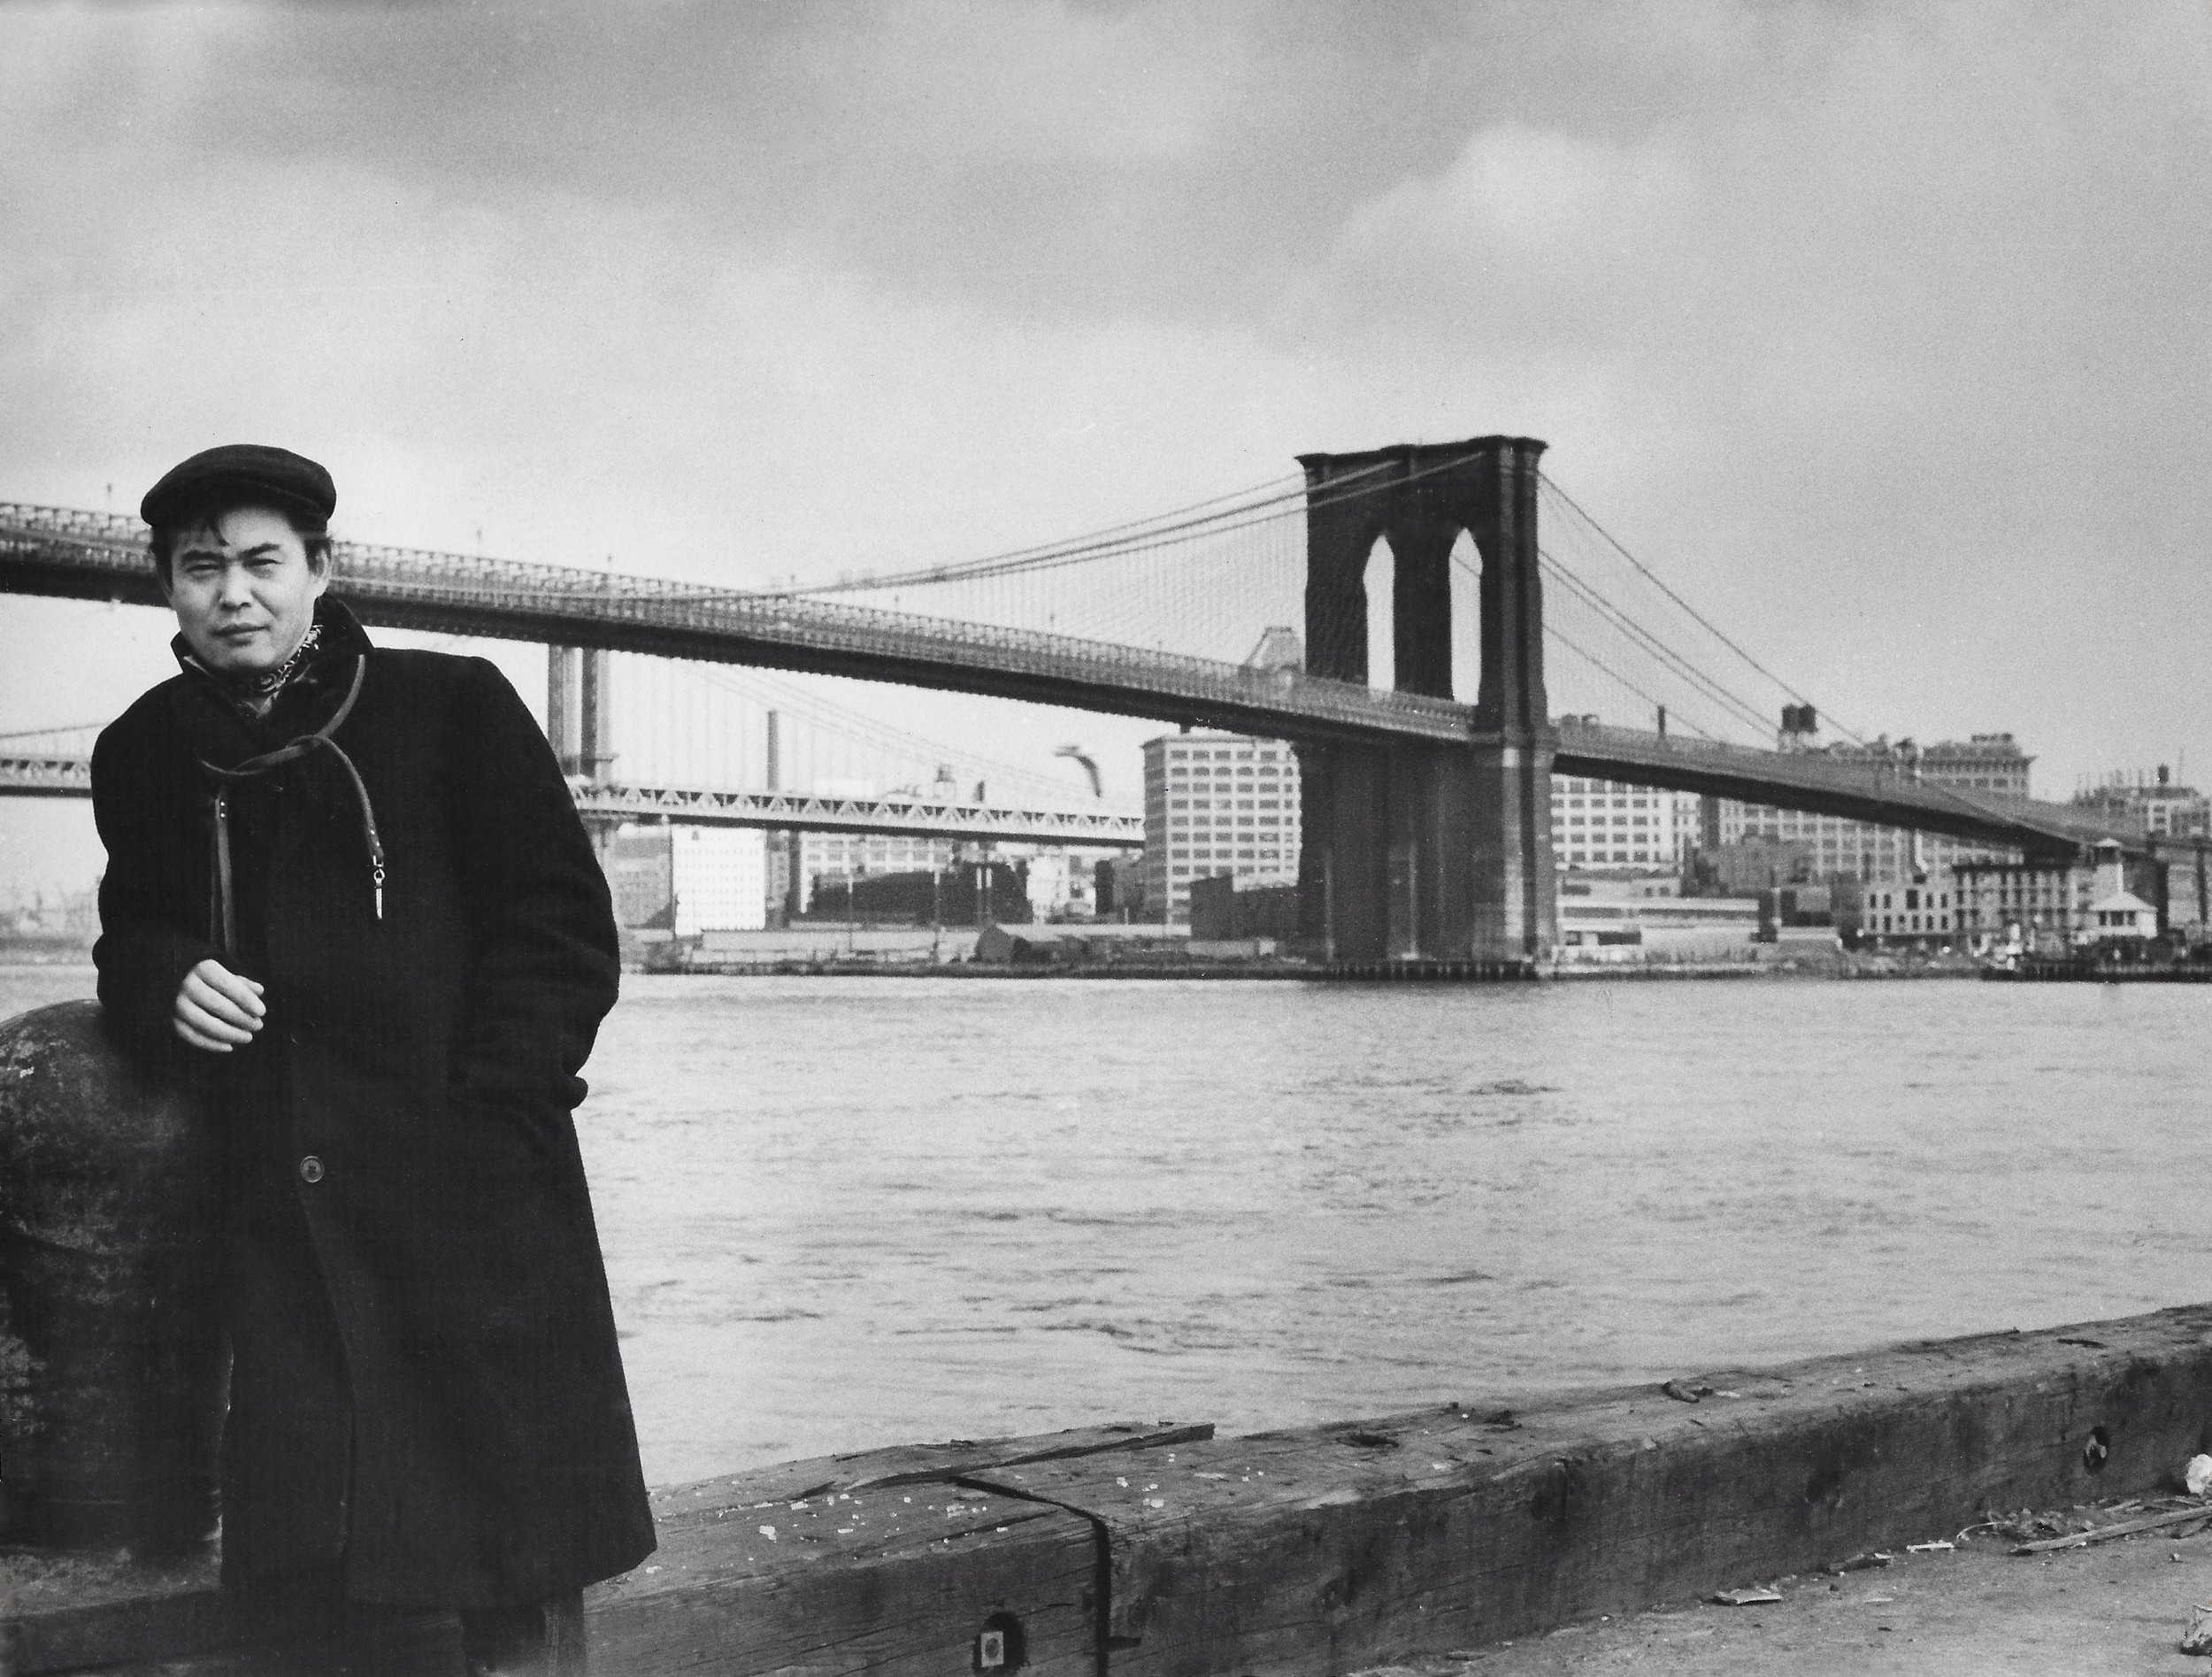 Kanemitsu in front of the Brooklyn Bridge, 1954.